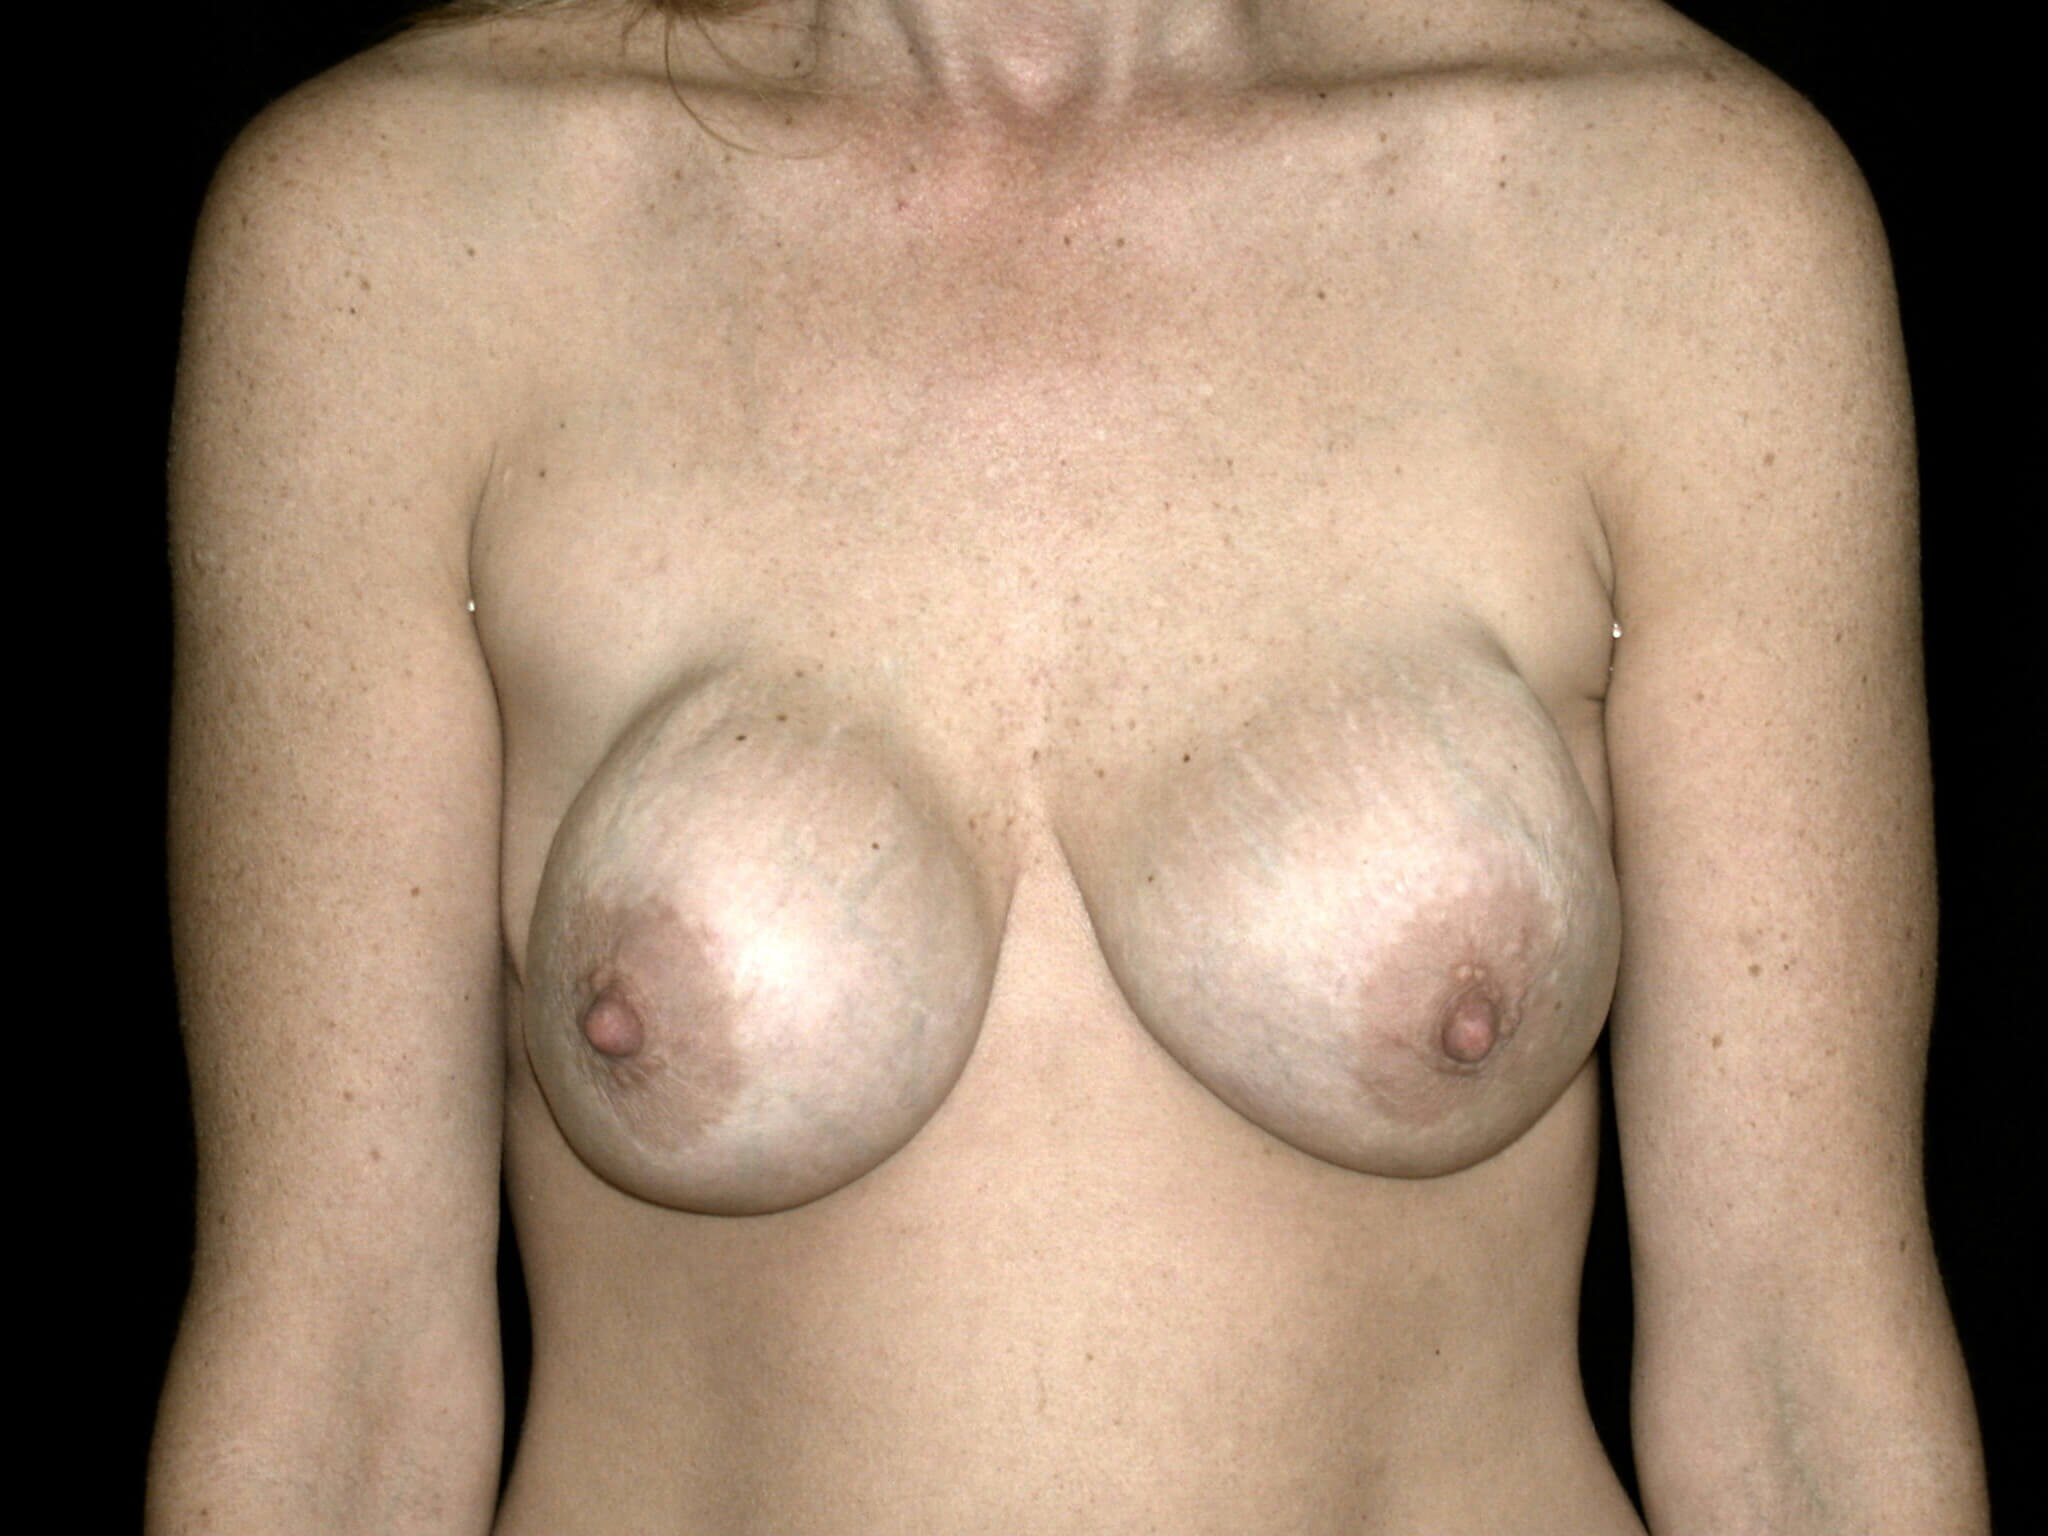 WOMAN IN DALLAS, TEXAS HAS BREAST AUGMENTATION REVISION REPLACEMENT